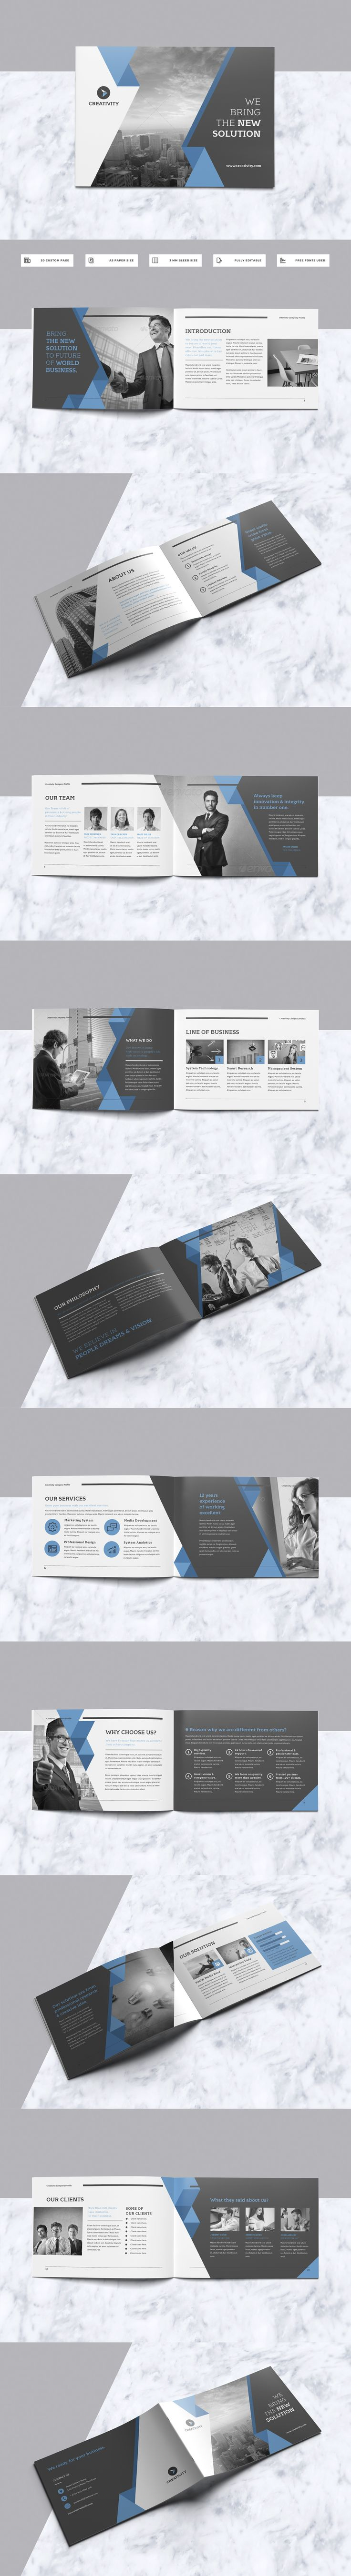 Professional & Modern A5 Brochure Template INDD With 20 Custom Pages Design